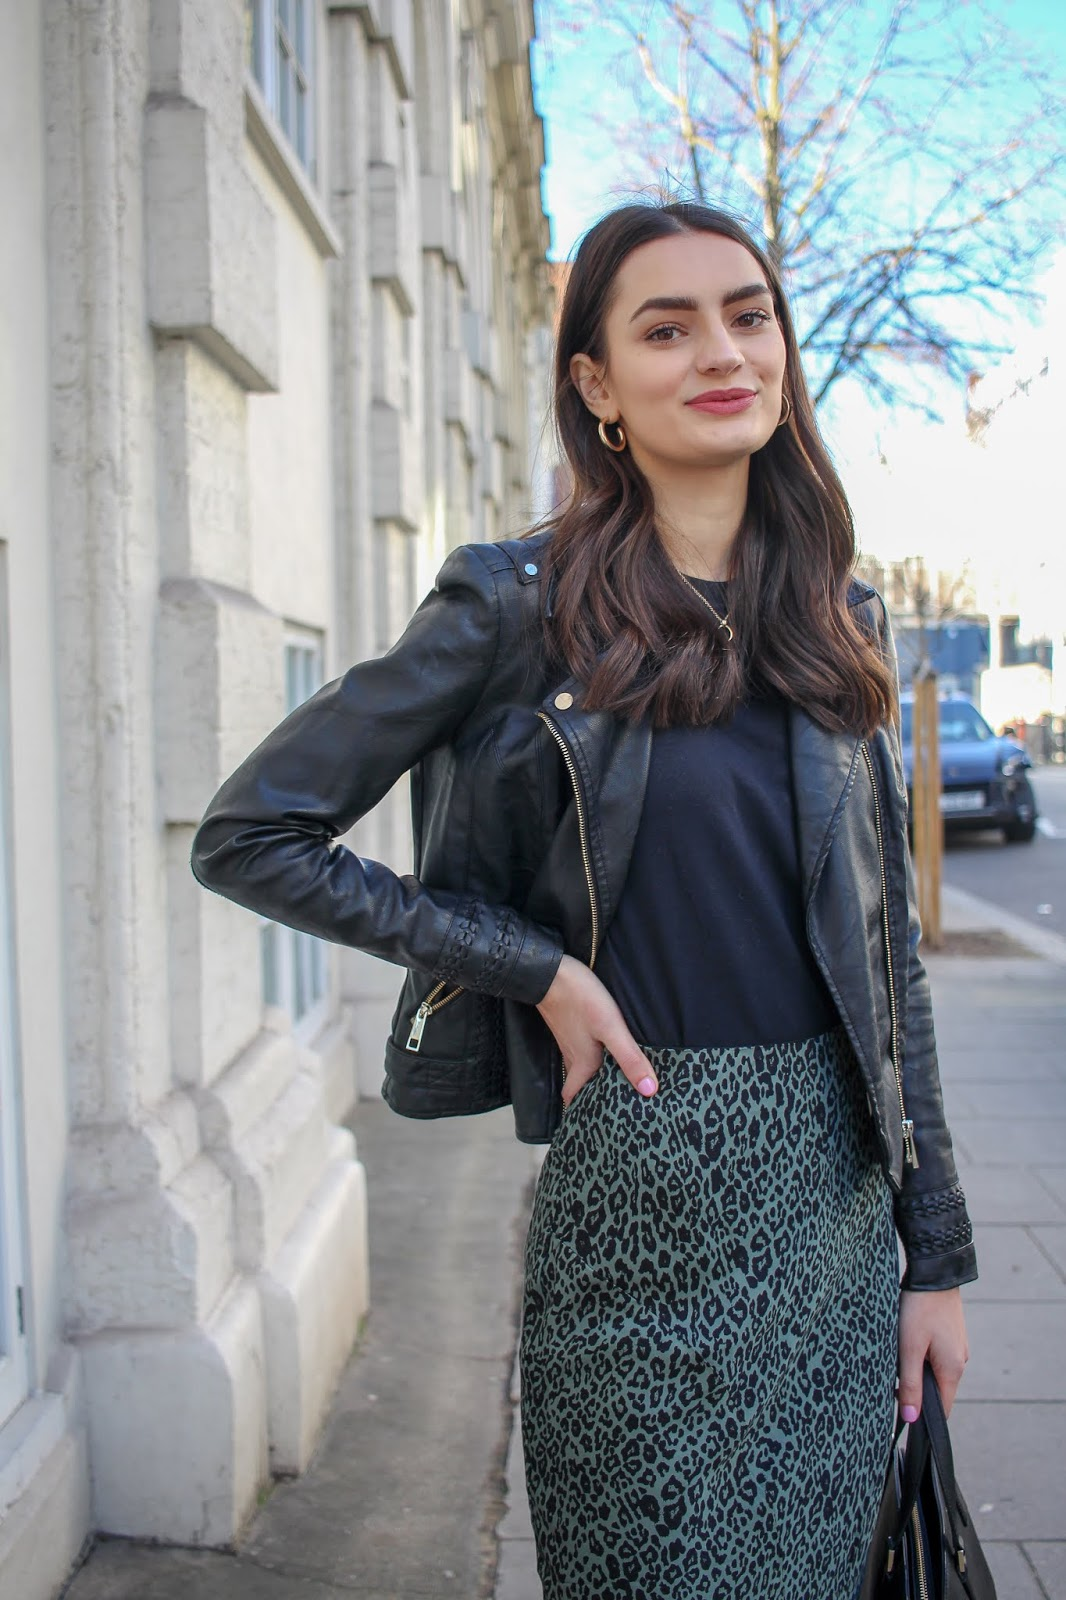 transitioning outfits from winter to spring